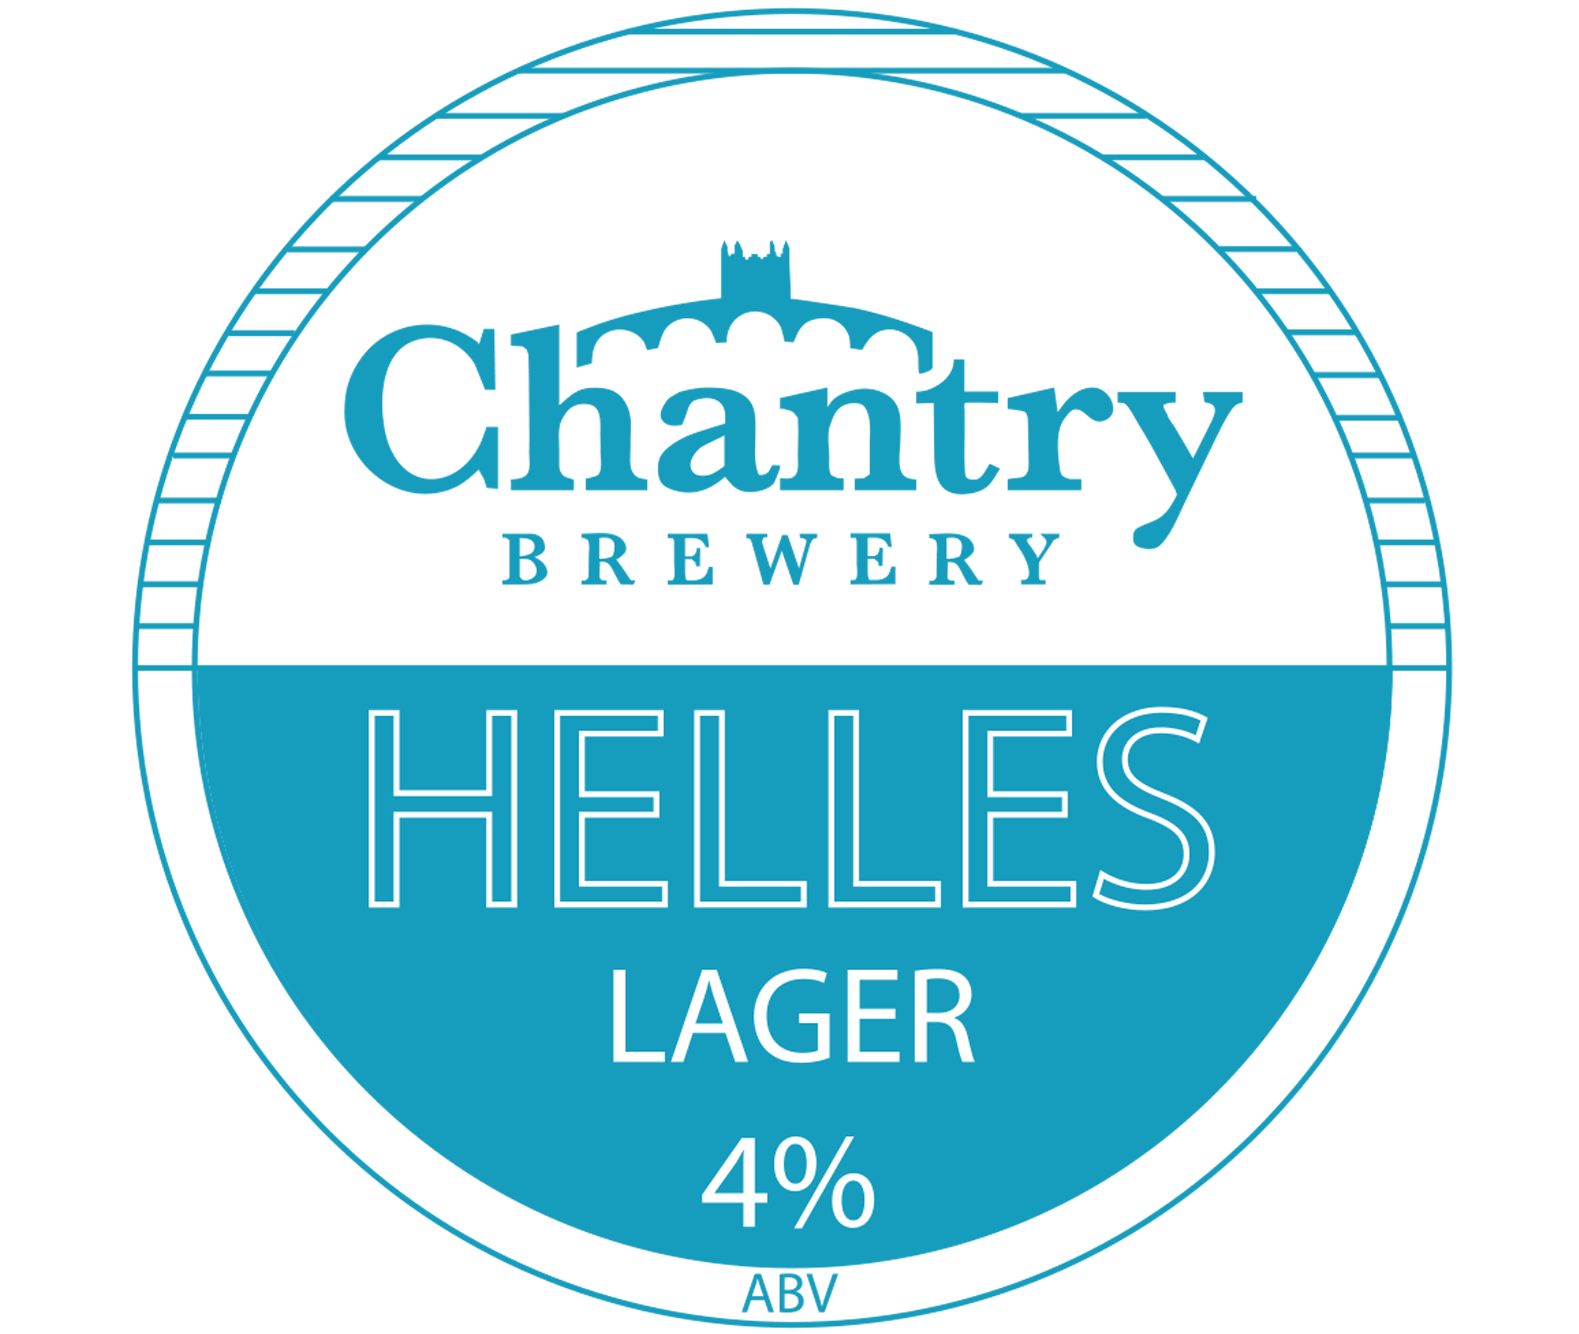 Chantry Brewery Helles Lager